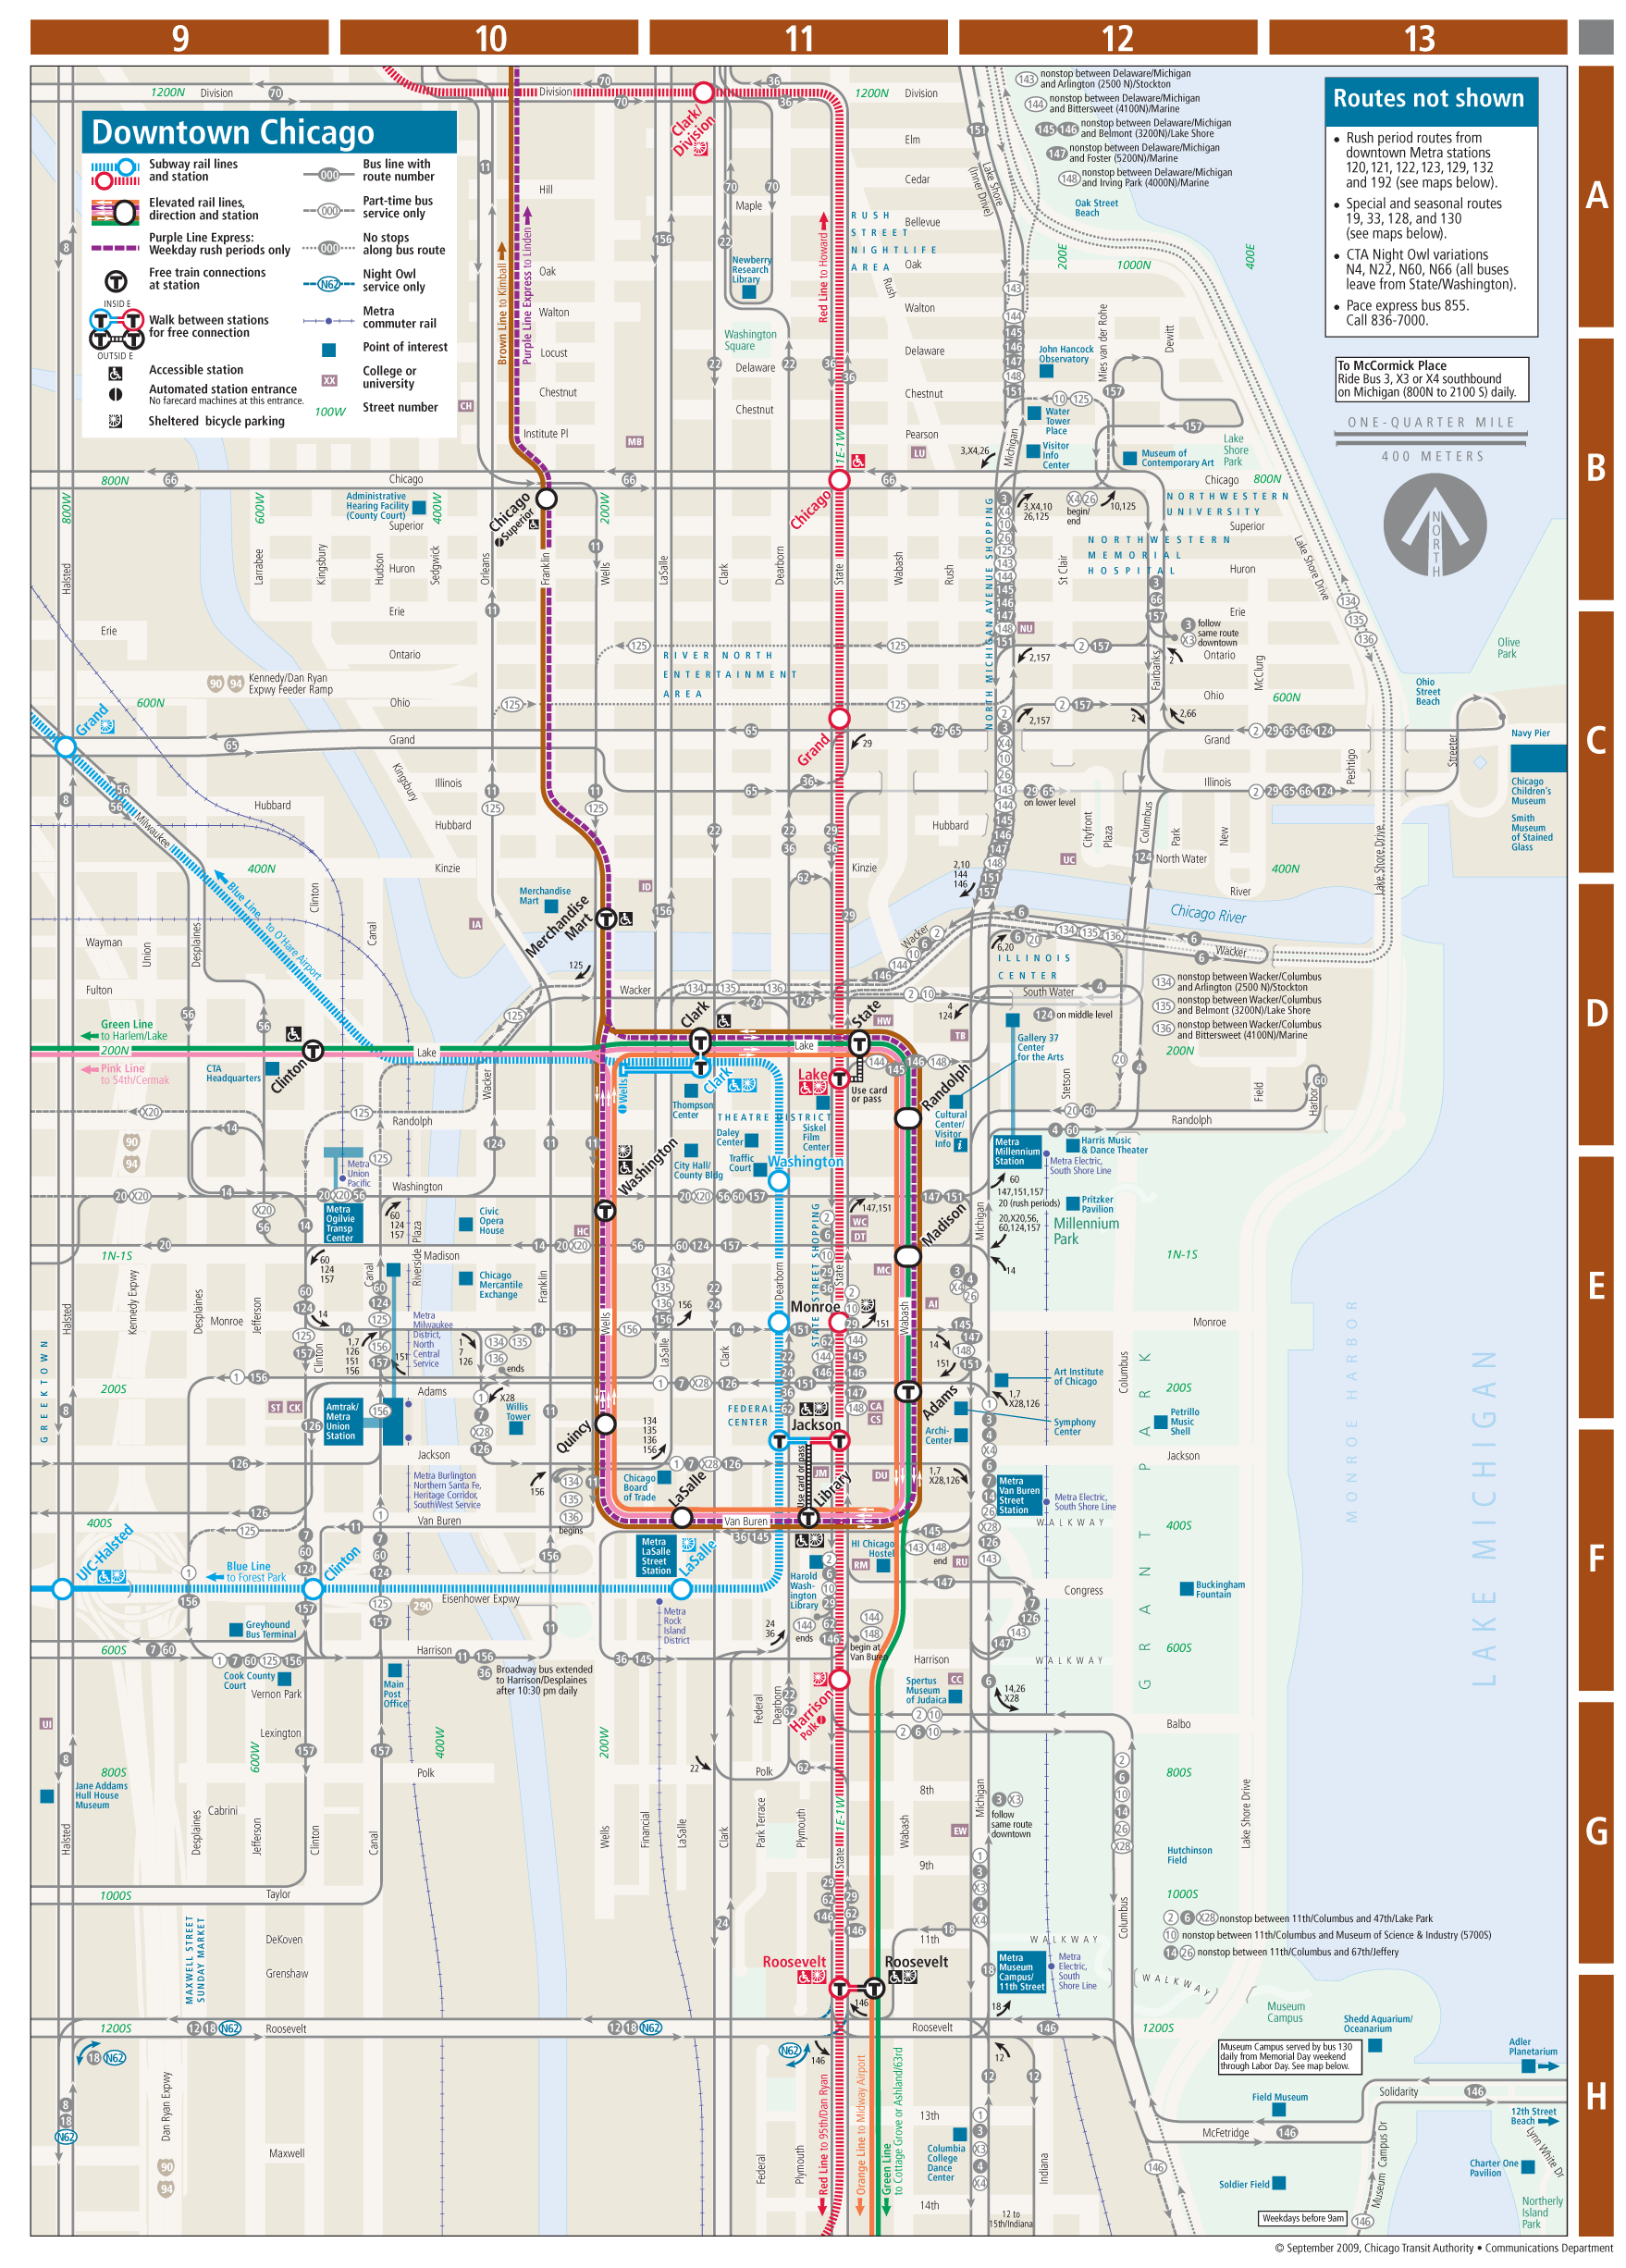 Chicago Downtown Metro System Map Mapsofnet